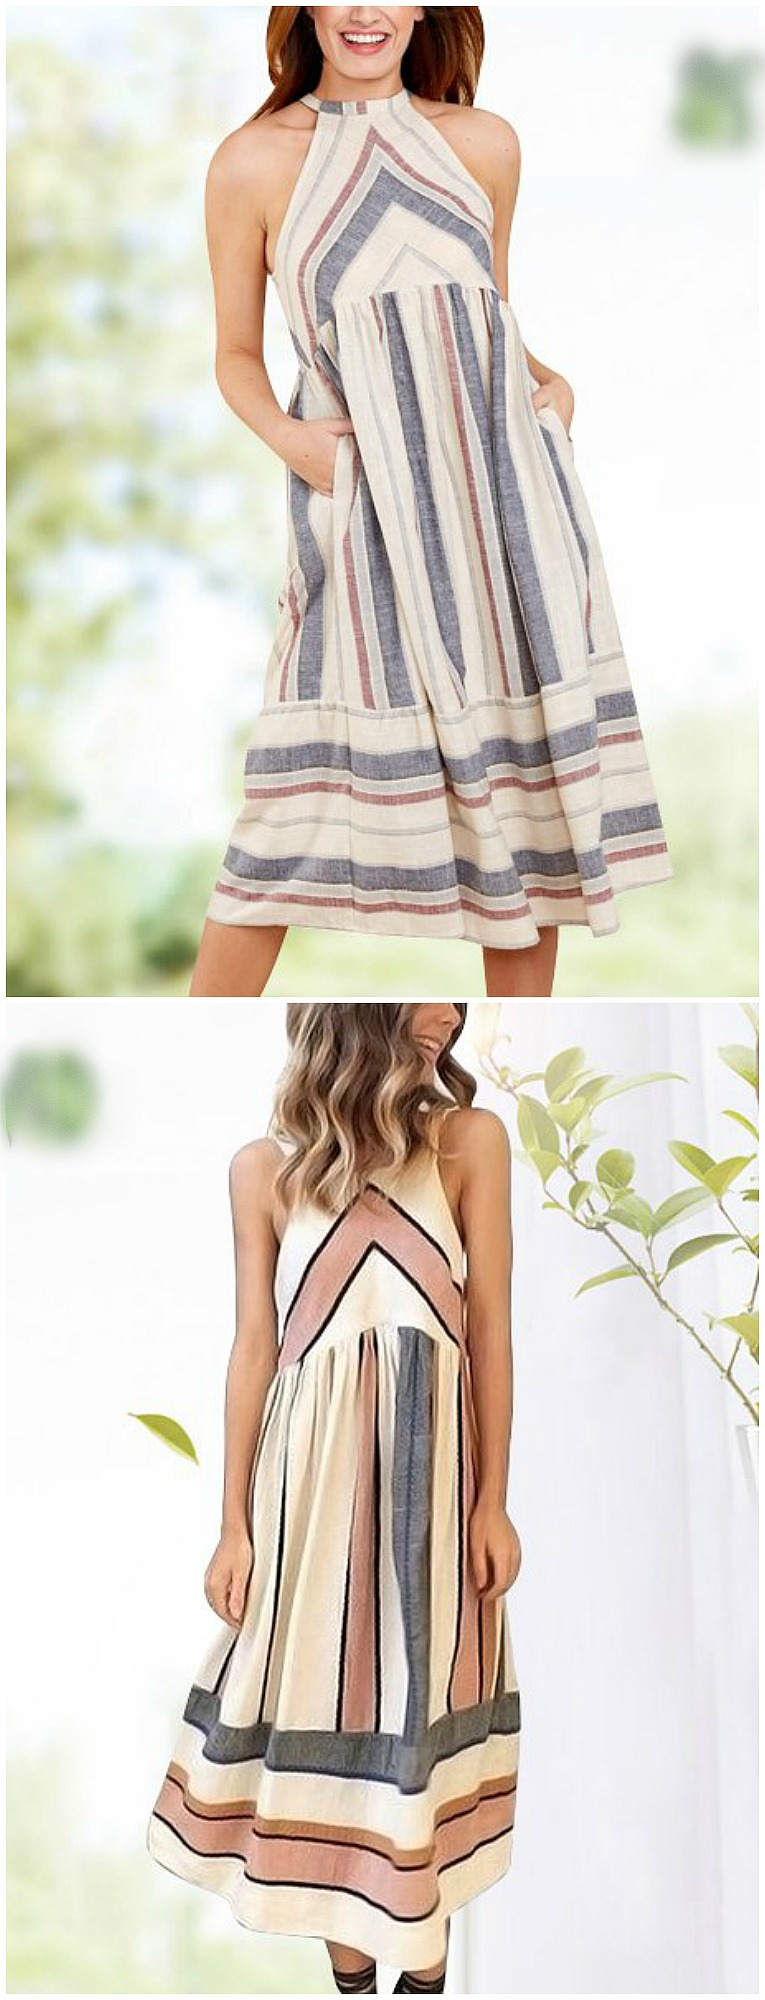 Affordable summer dresses for women. Cute and fun dresses.